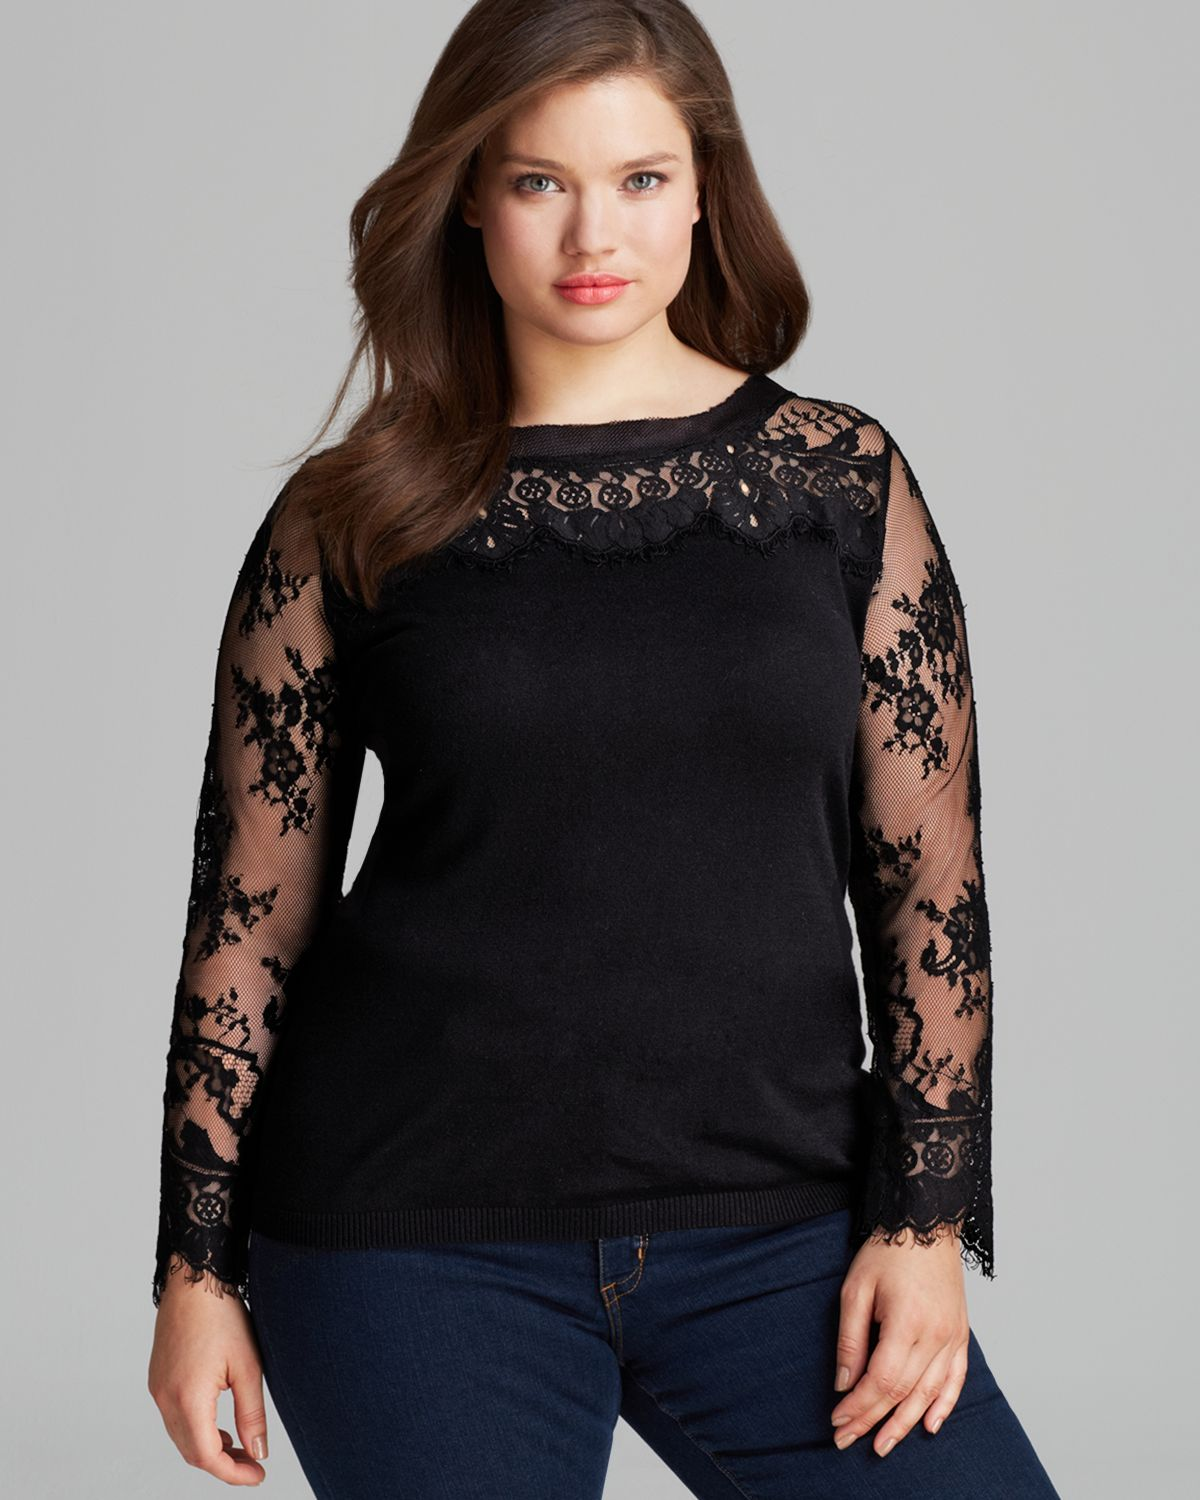 Marina rinaldi Plus Argento Sweater with Lace Sleeves in Black   Lyst